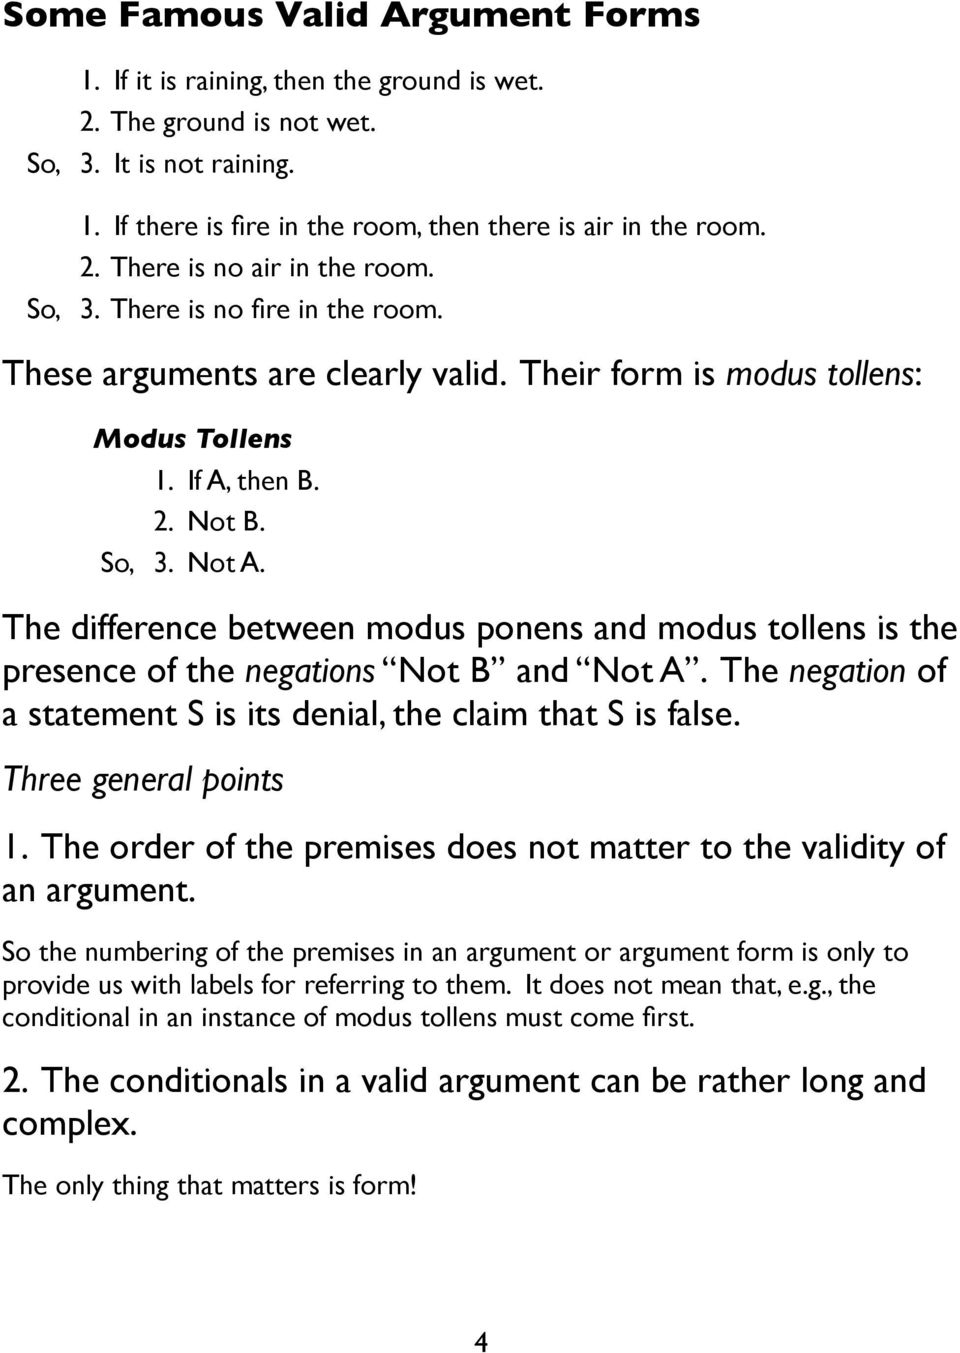 The difference between modus ponens and modus tollens is the presence of the negations Not B and Not A. The negation of a statement S is its denial, the claim that S is false. Three general points 1.